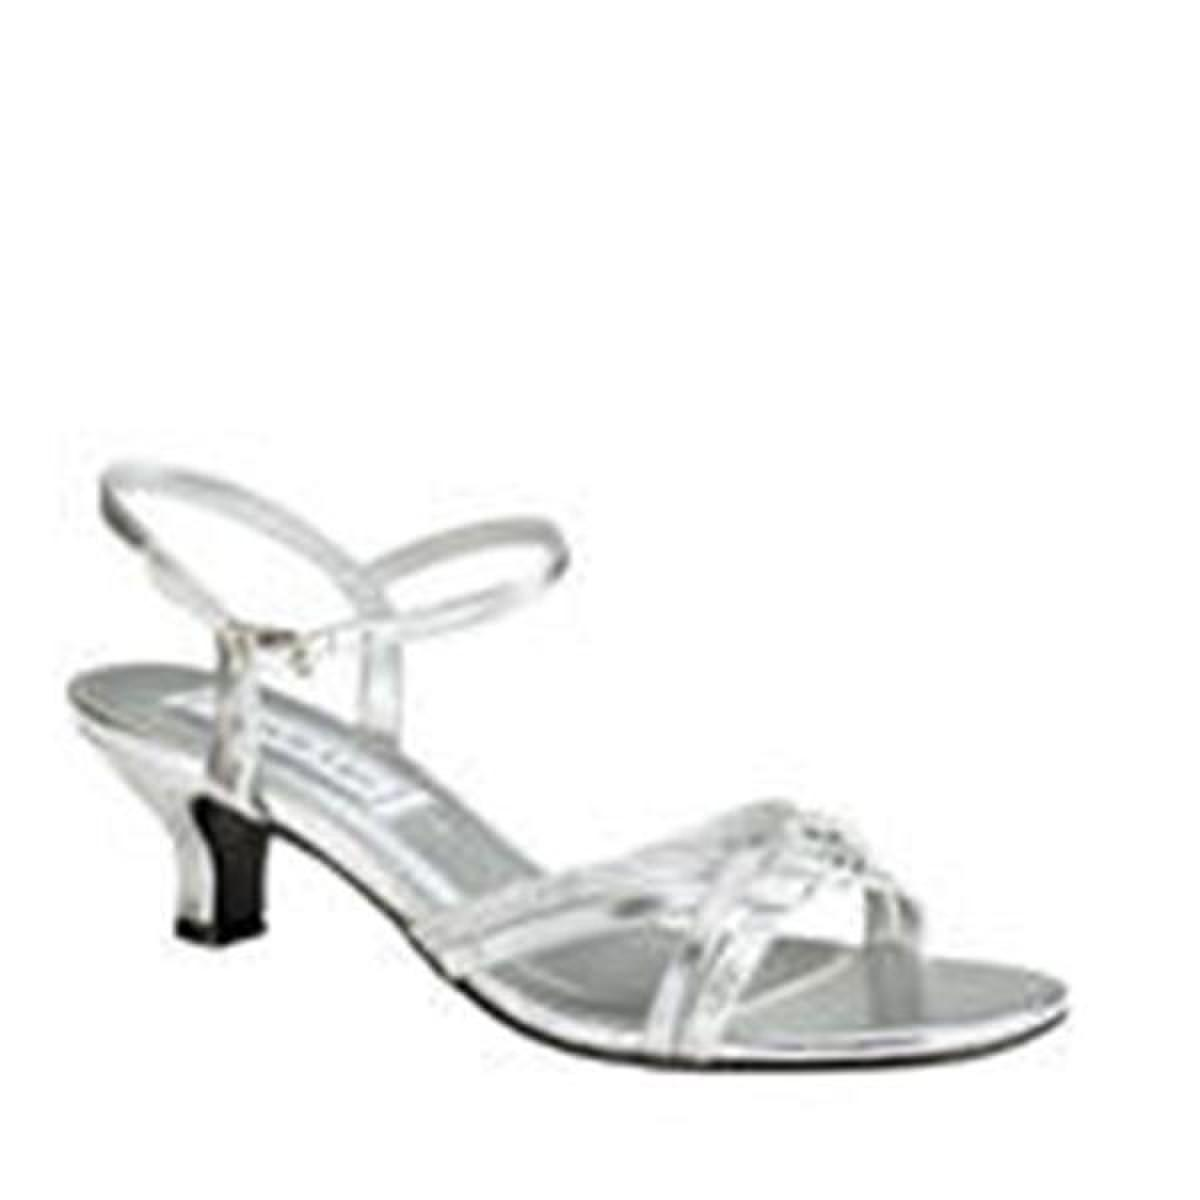 Metallic Low-Heel Open Toe Sandal